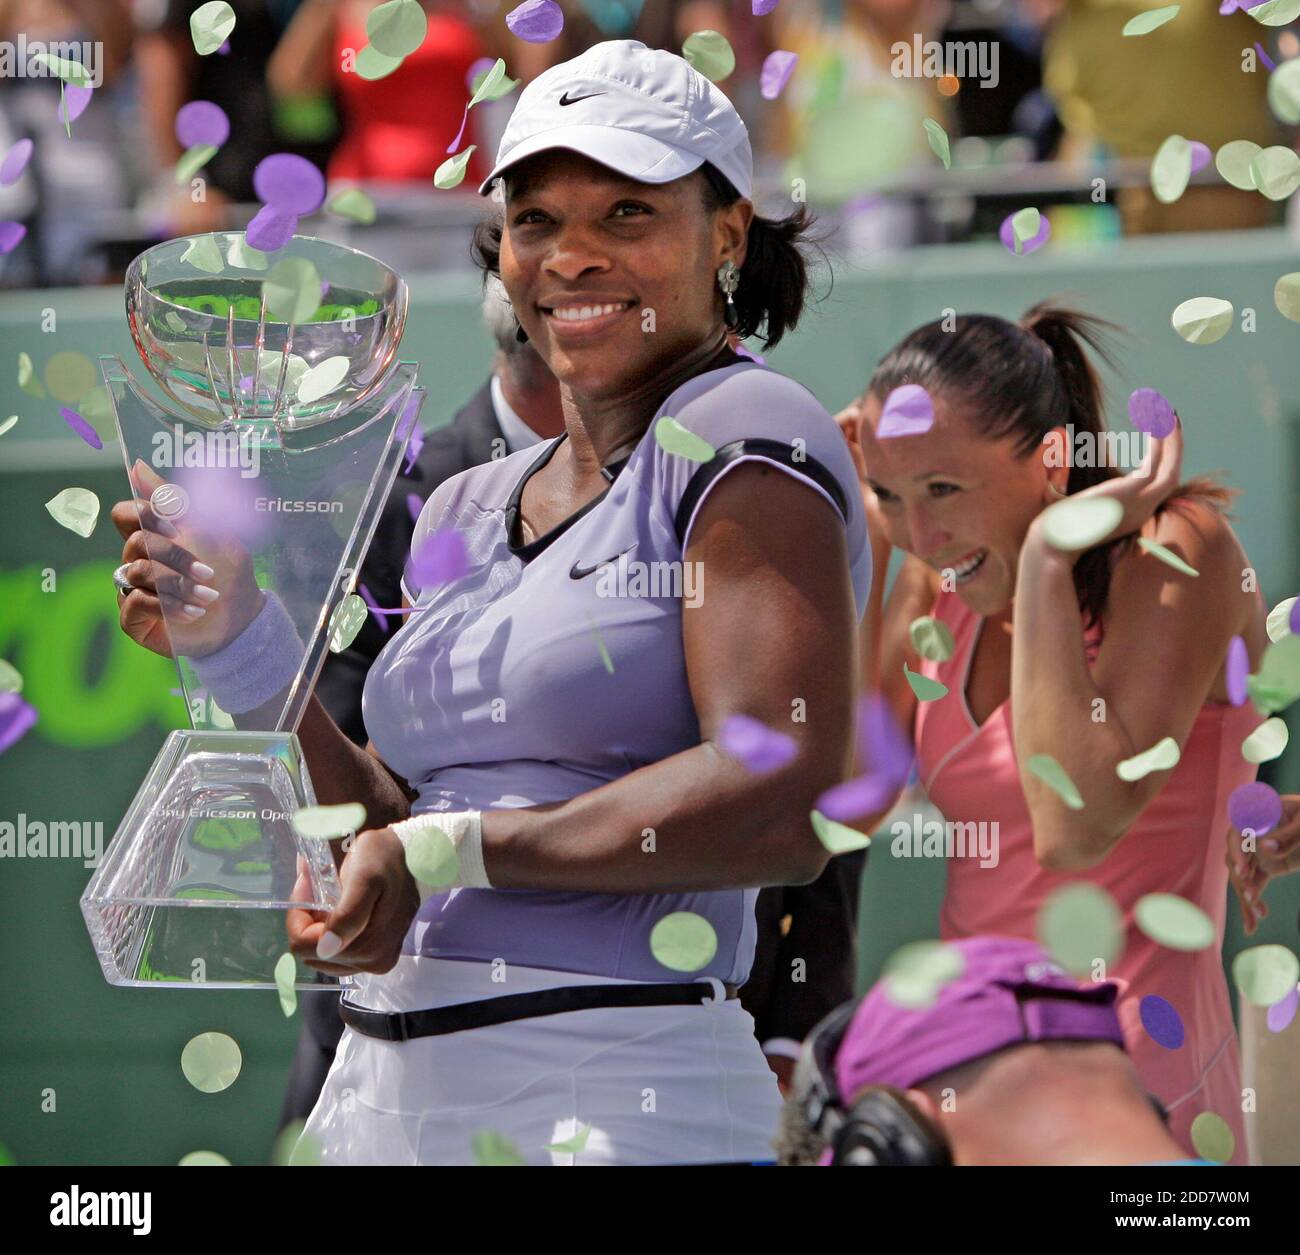 NO FILM, NO VIDEO, NO TV, NO DOCUMENTARY - Serena Williams, of the United States, holds her trophy after defeating Jelena Jankovic, of Serbia, in the finals at the Sony Ericsson Open in Key Biscayne, FL, USA on April 5, 2008. Photo by Al Diaz/Miami Herald/MCT/Cameleon/ABACAPRESS.COM Stock Photo